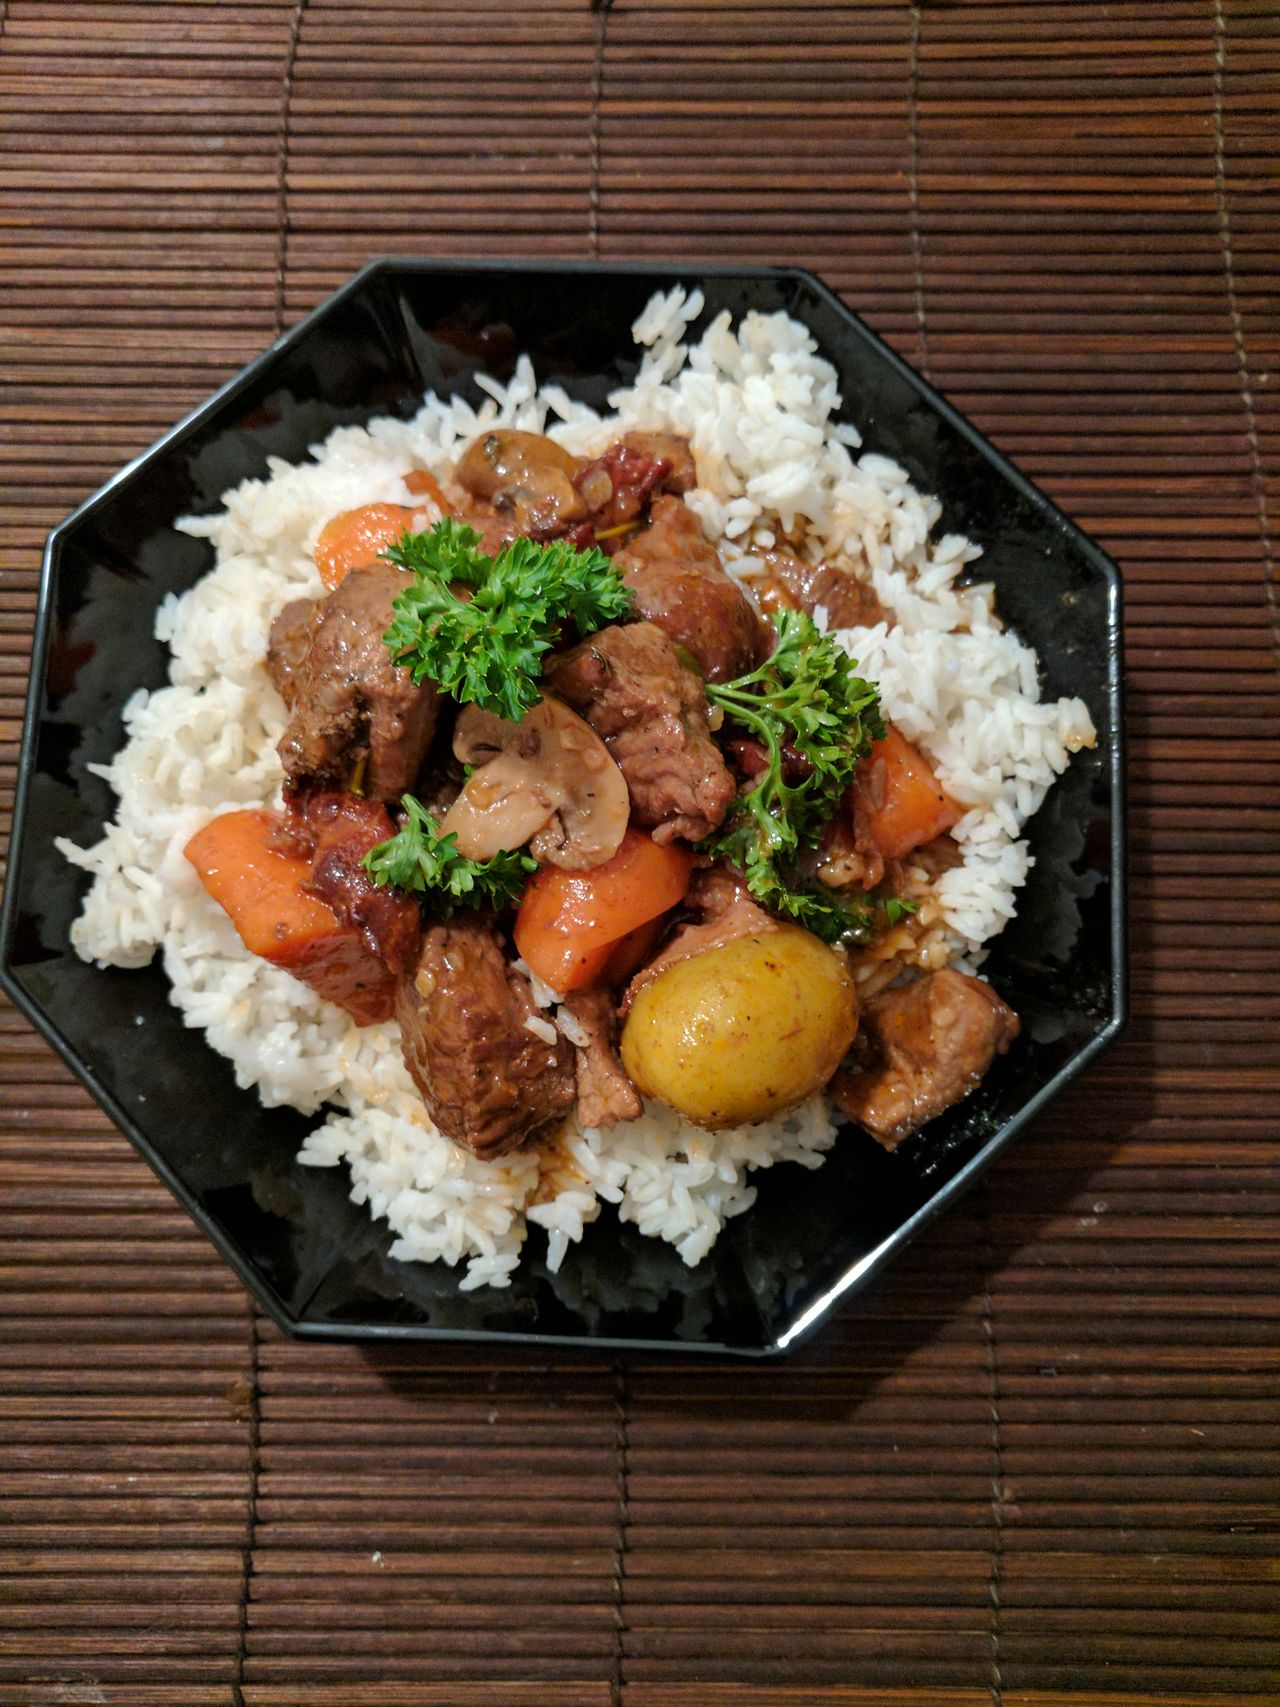 Day Food Food And Drink High Angle View Indoors  Meal No People Plate Ready-to-eat Rice - Food Staple Vegetable